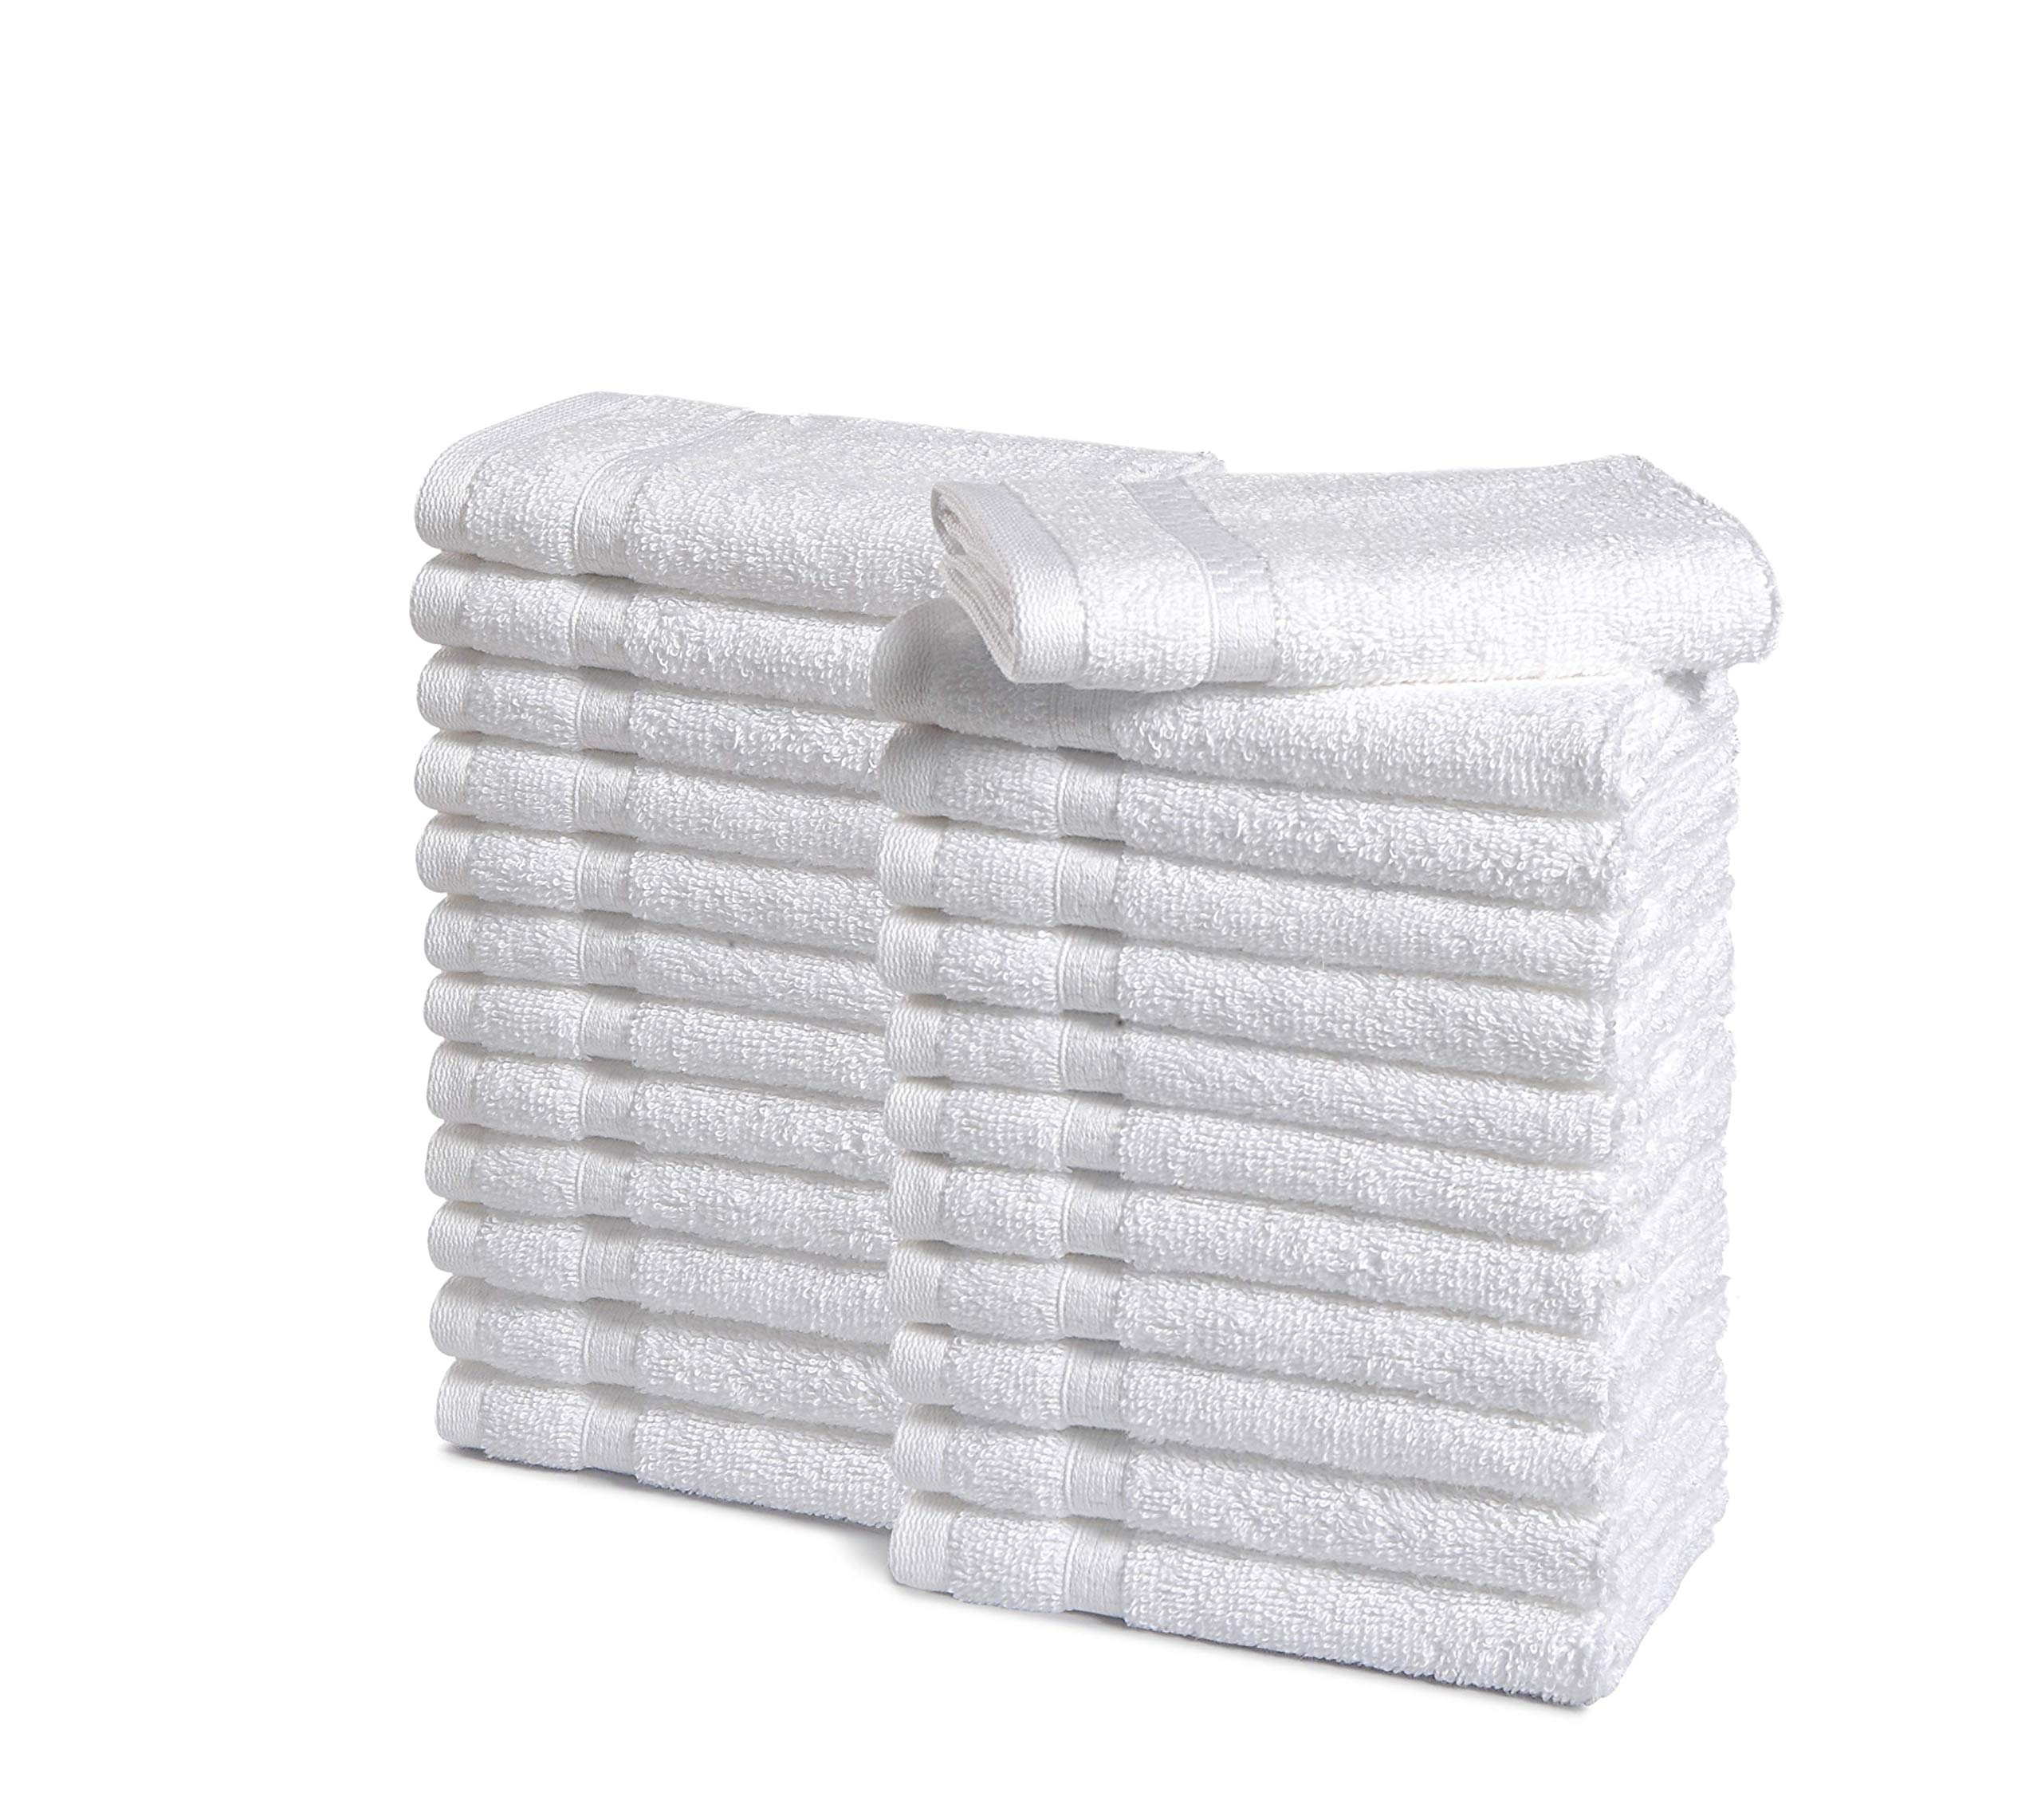 Haven Cotton 887719088631 Washcloth - pack of 24, 24 Pcs Wash towel, White